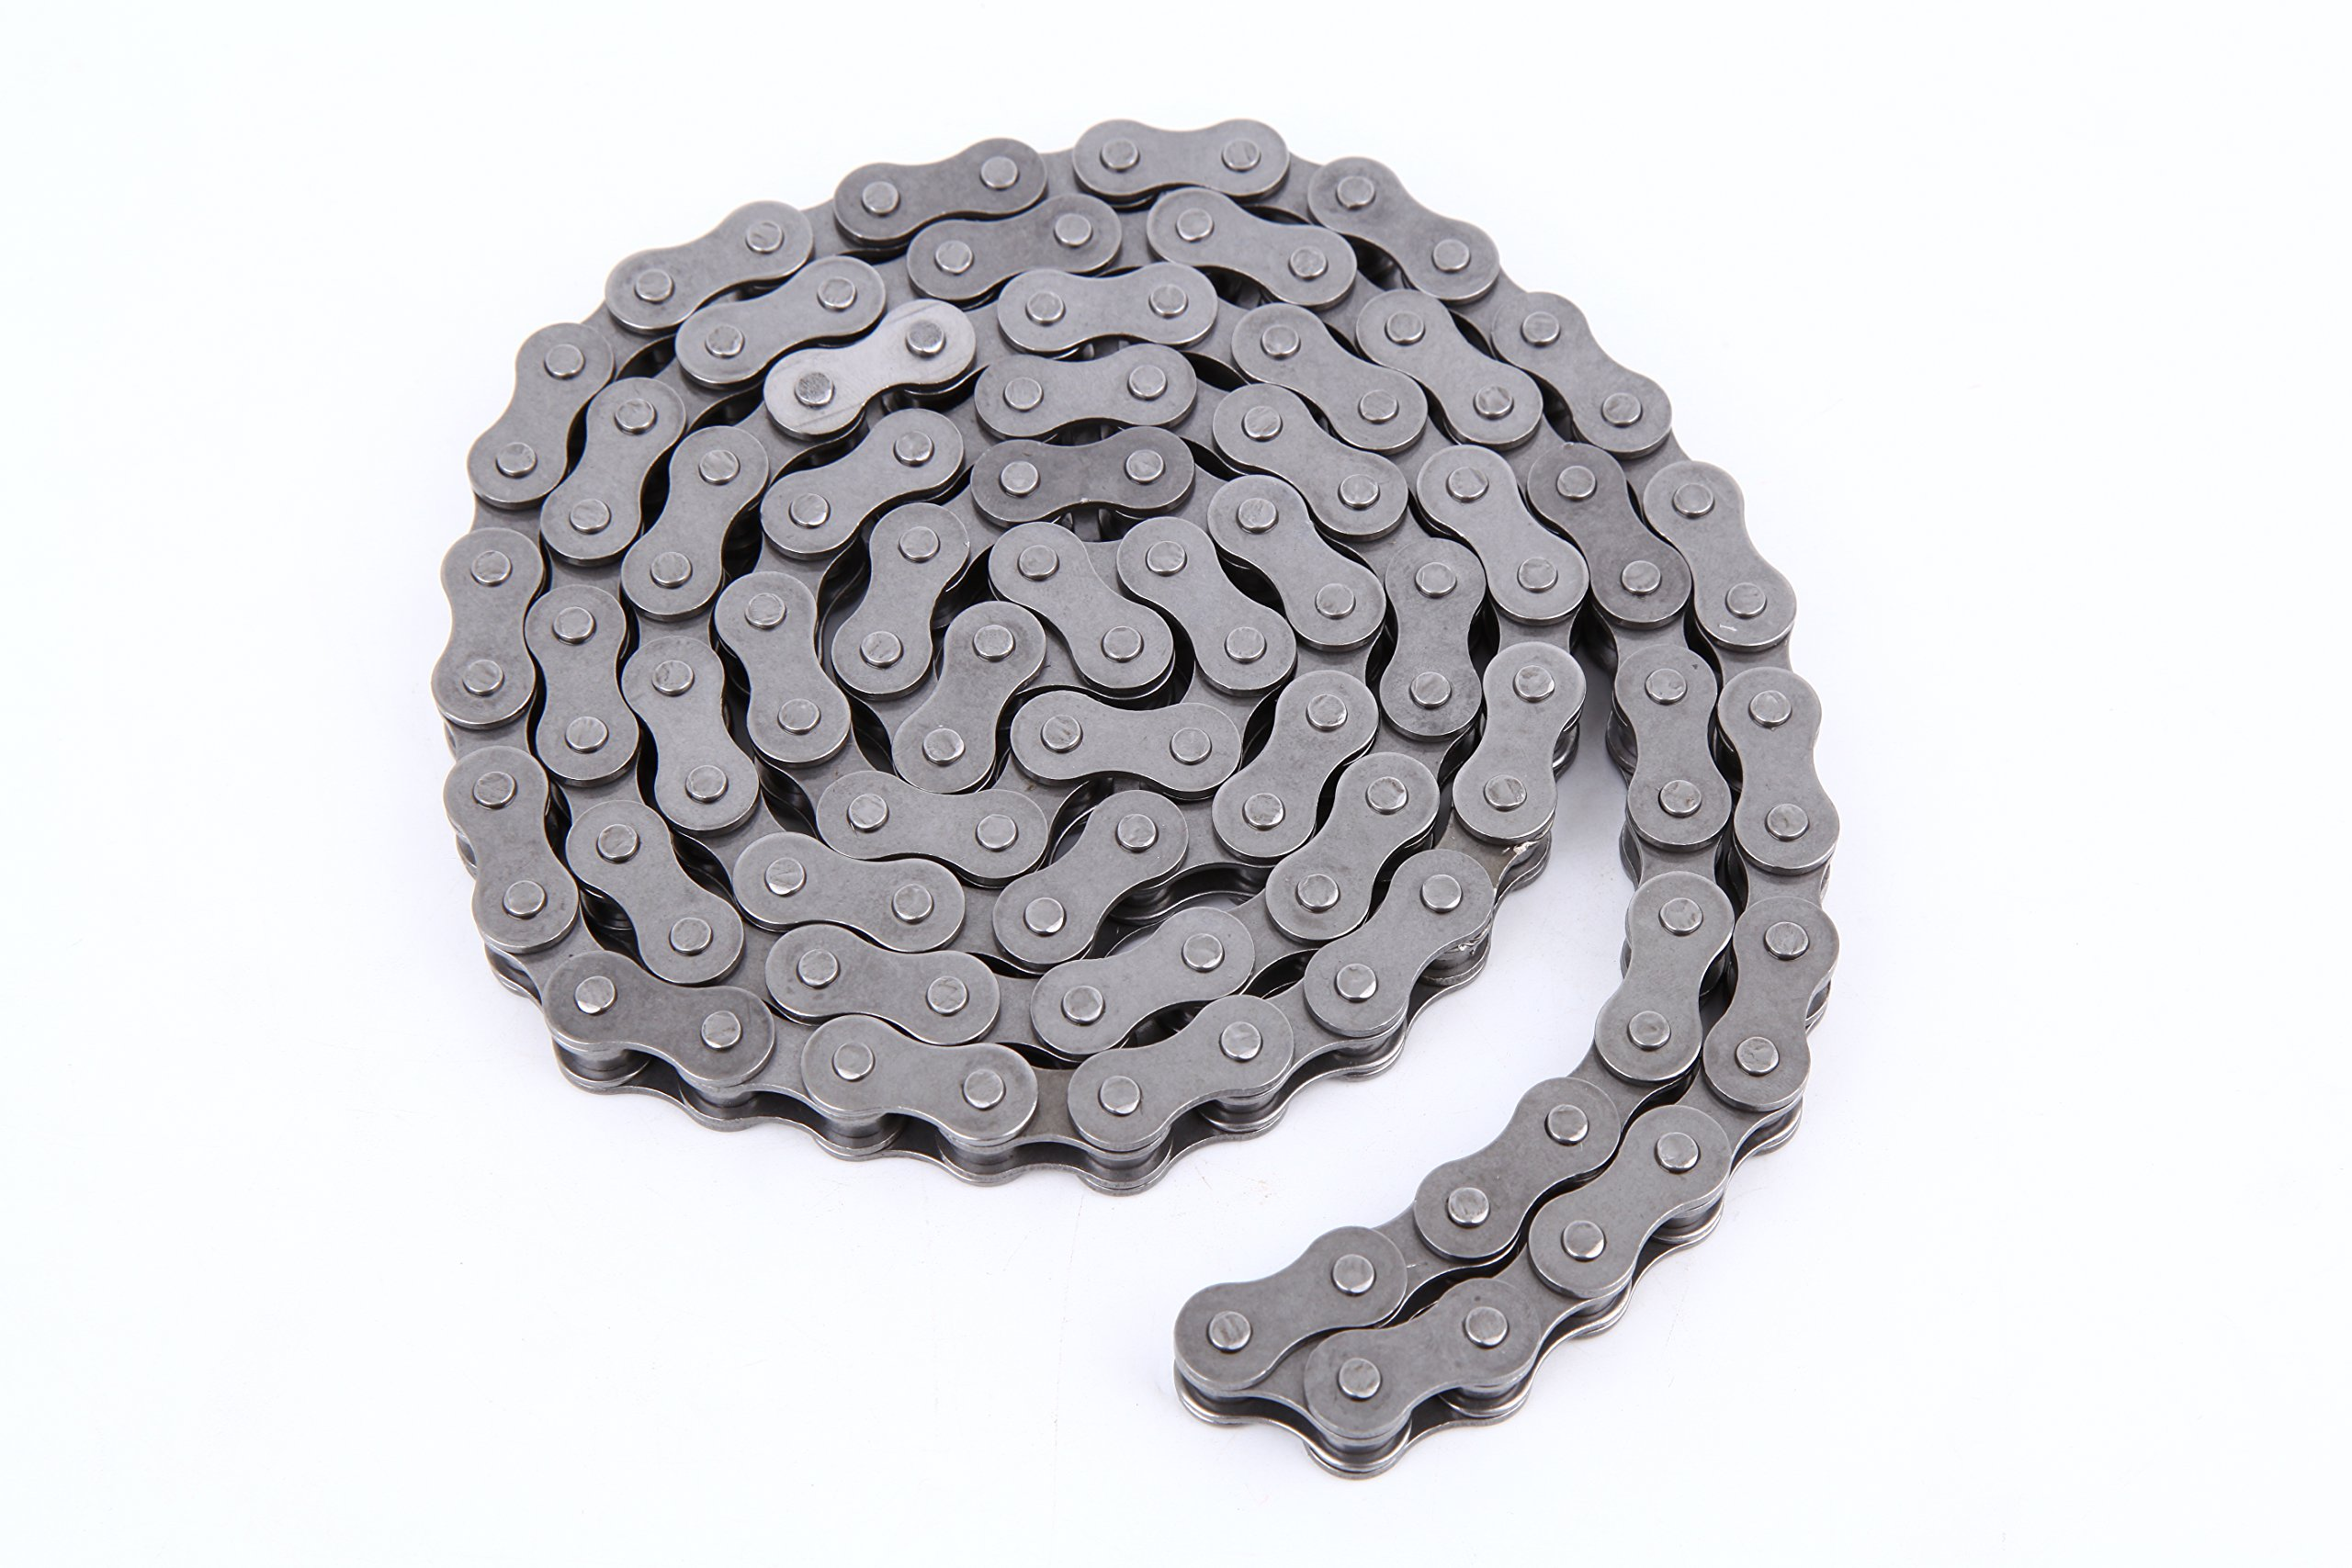 Iglobalbuy 415 Dirt Bike ATV Quad Bike Link Chain For TaoTao SUNL Honda Yamaha Kawasaki Suzuki 49cc 50cc 80cc Black